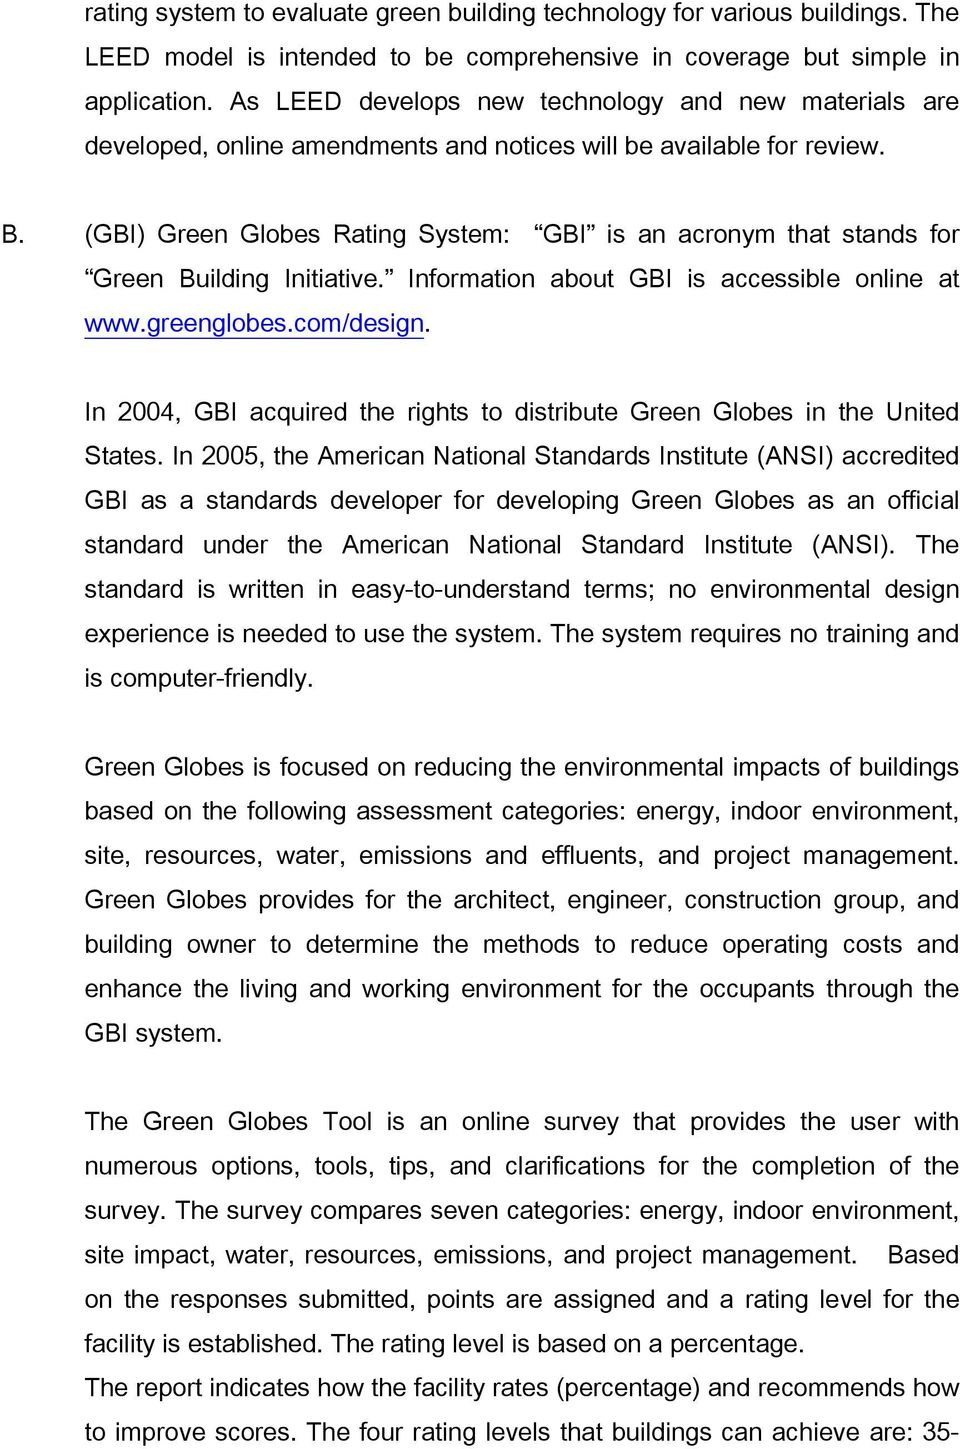 (GBI) Green Globes Rating System: GBI is an acronym that stands for Green Building Initiative. Information about GBI is accessible online at www.greenglobes.com/design.